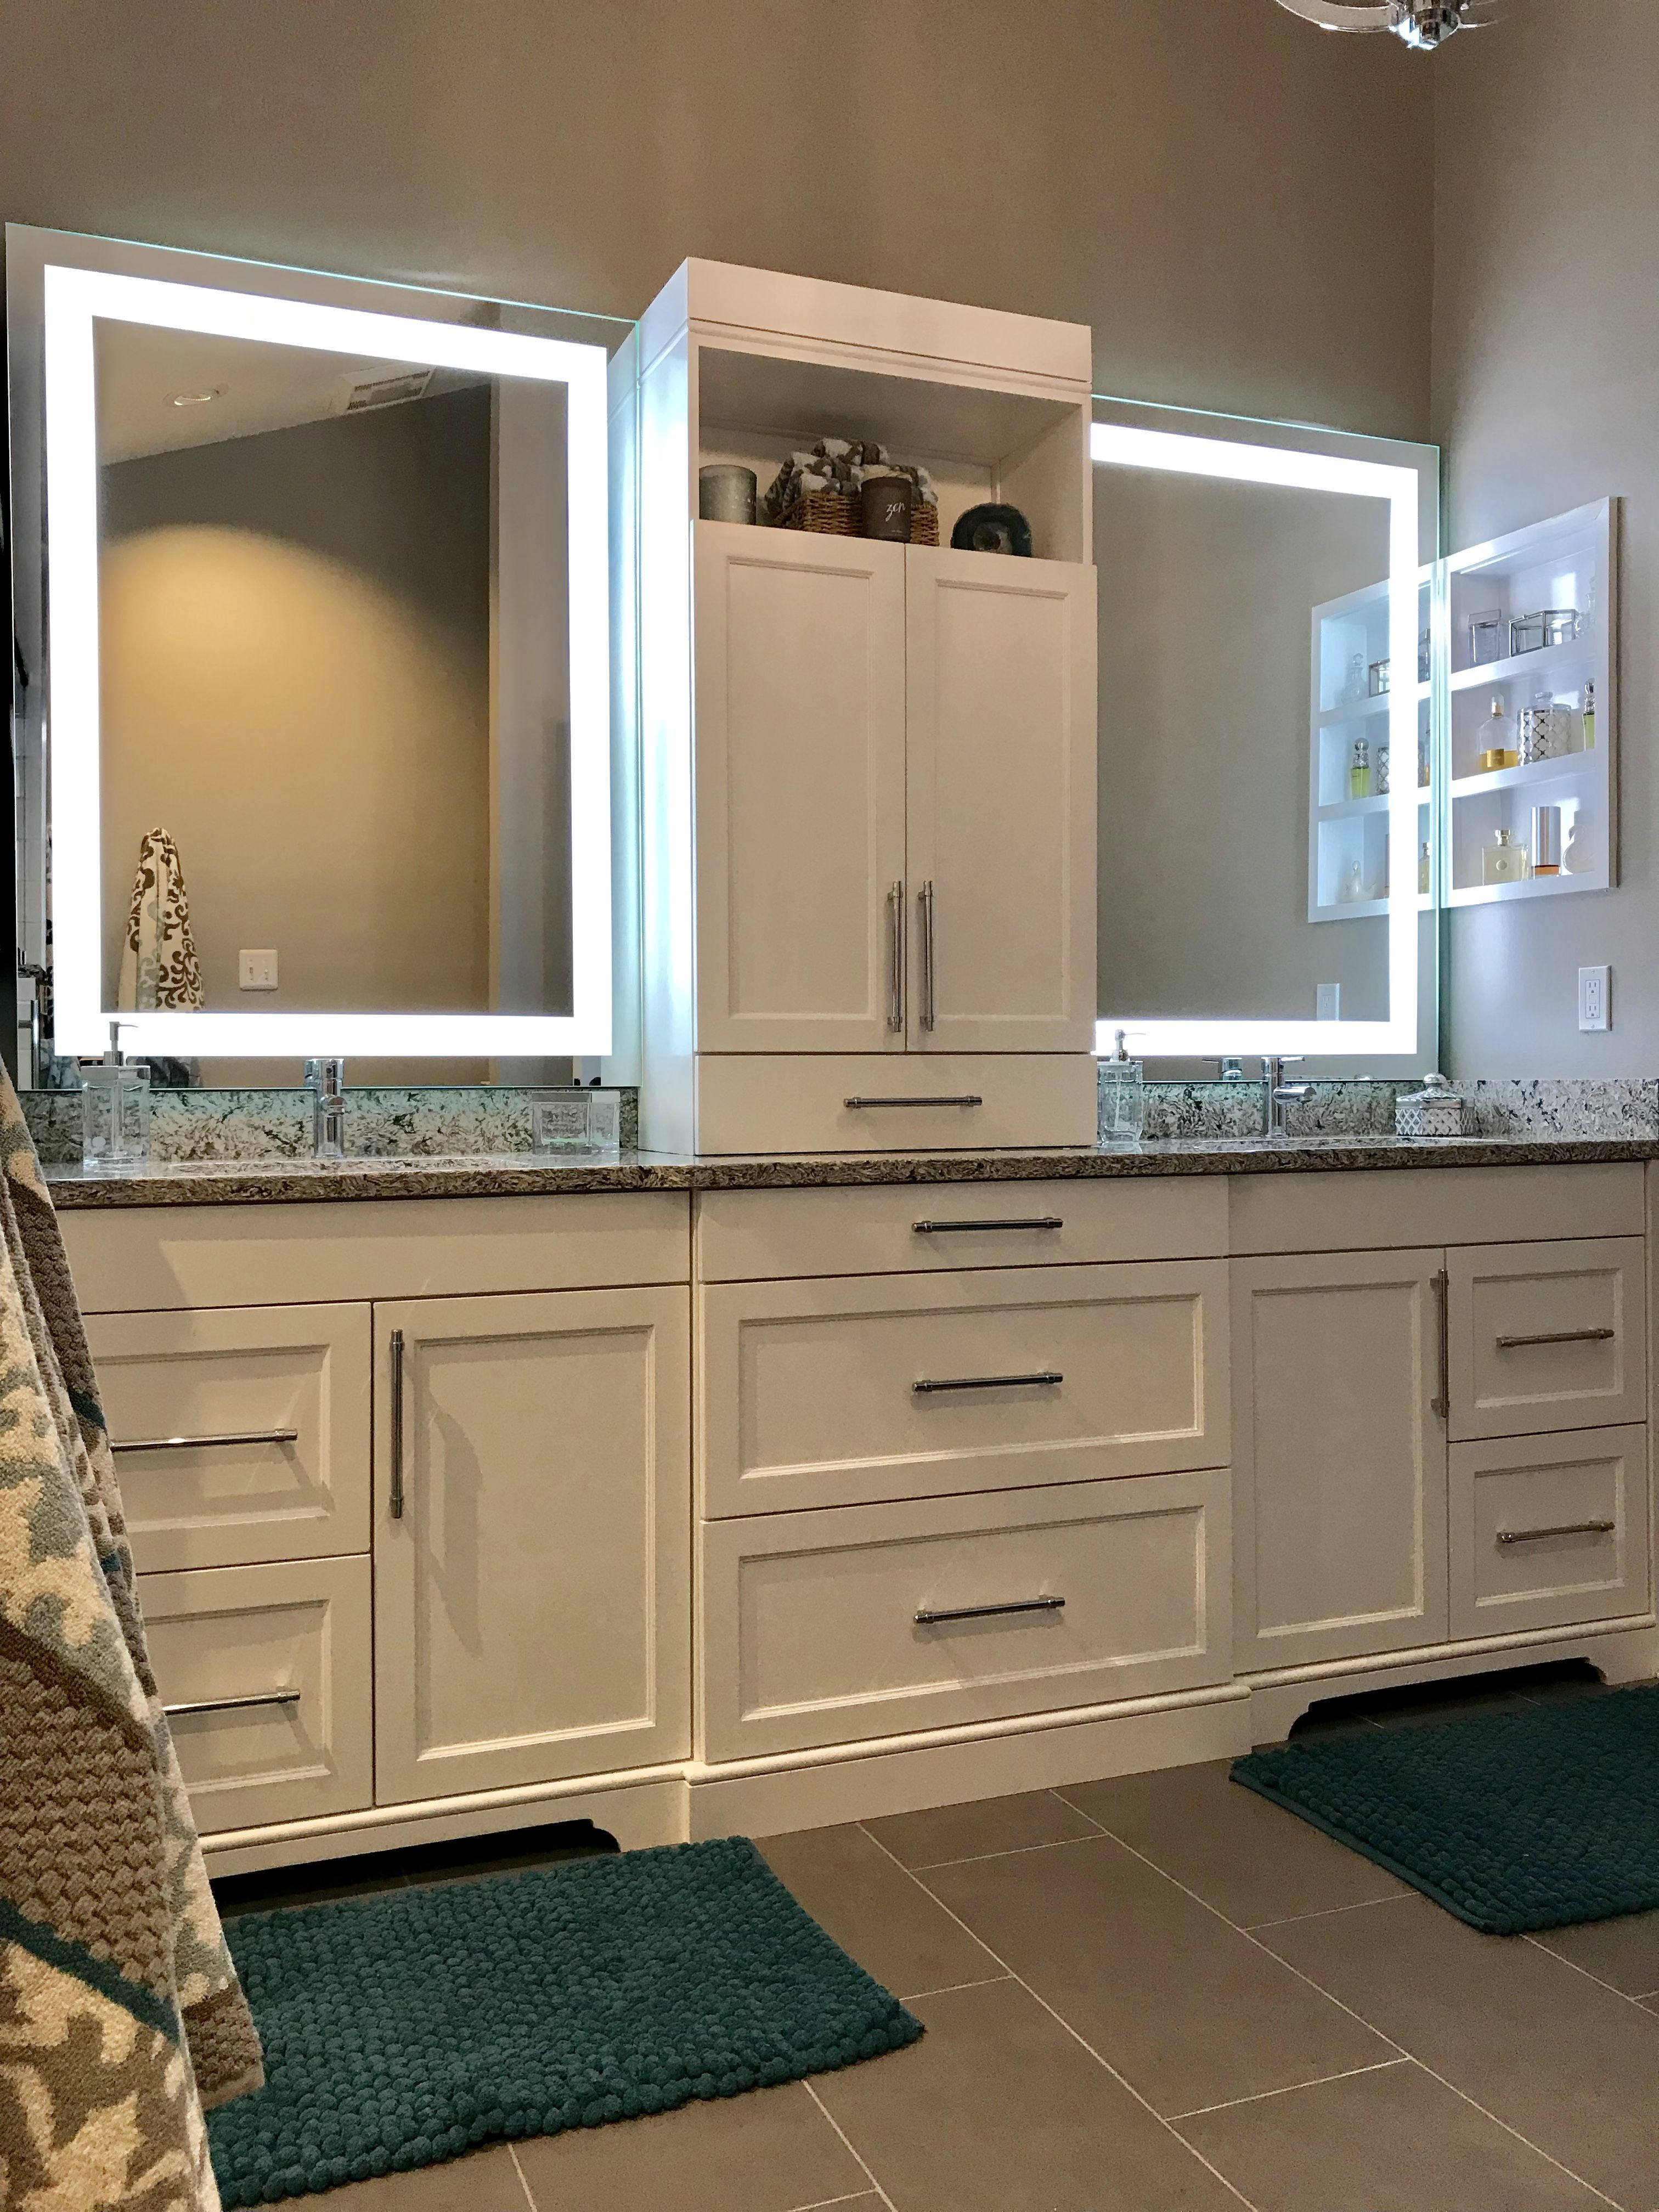 Custom White Double Vanity With Center Tower And Led Mirrors We Love All The Storage We Now Have The M Double Vanity Bathroom Bathroom Vanity Bathroom Design